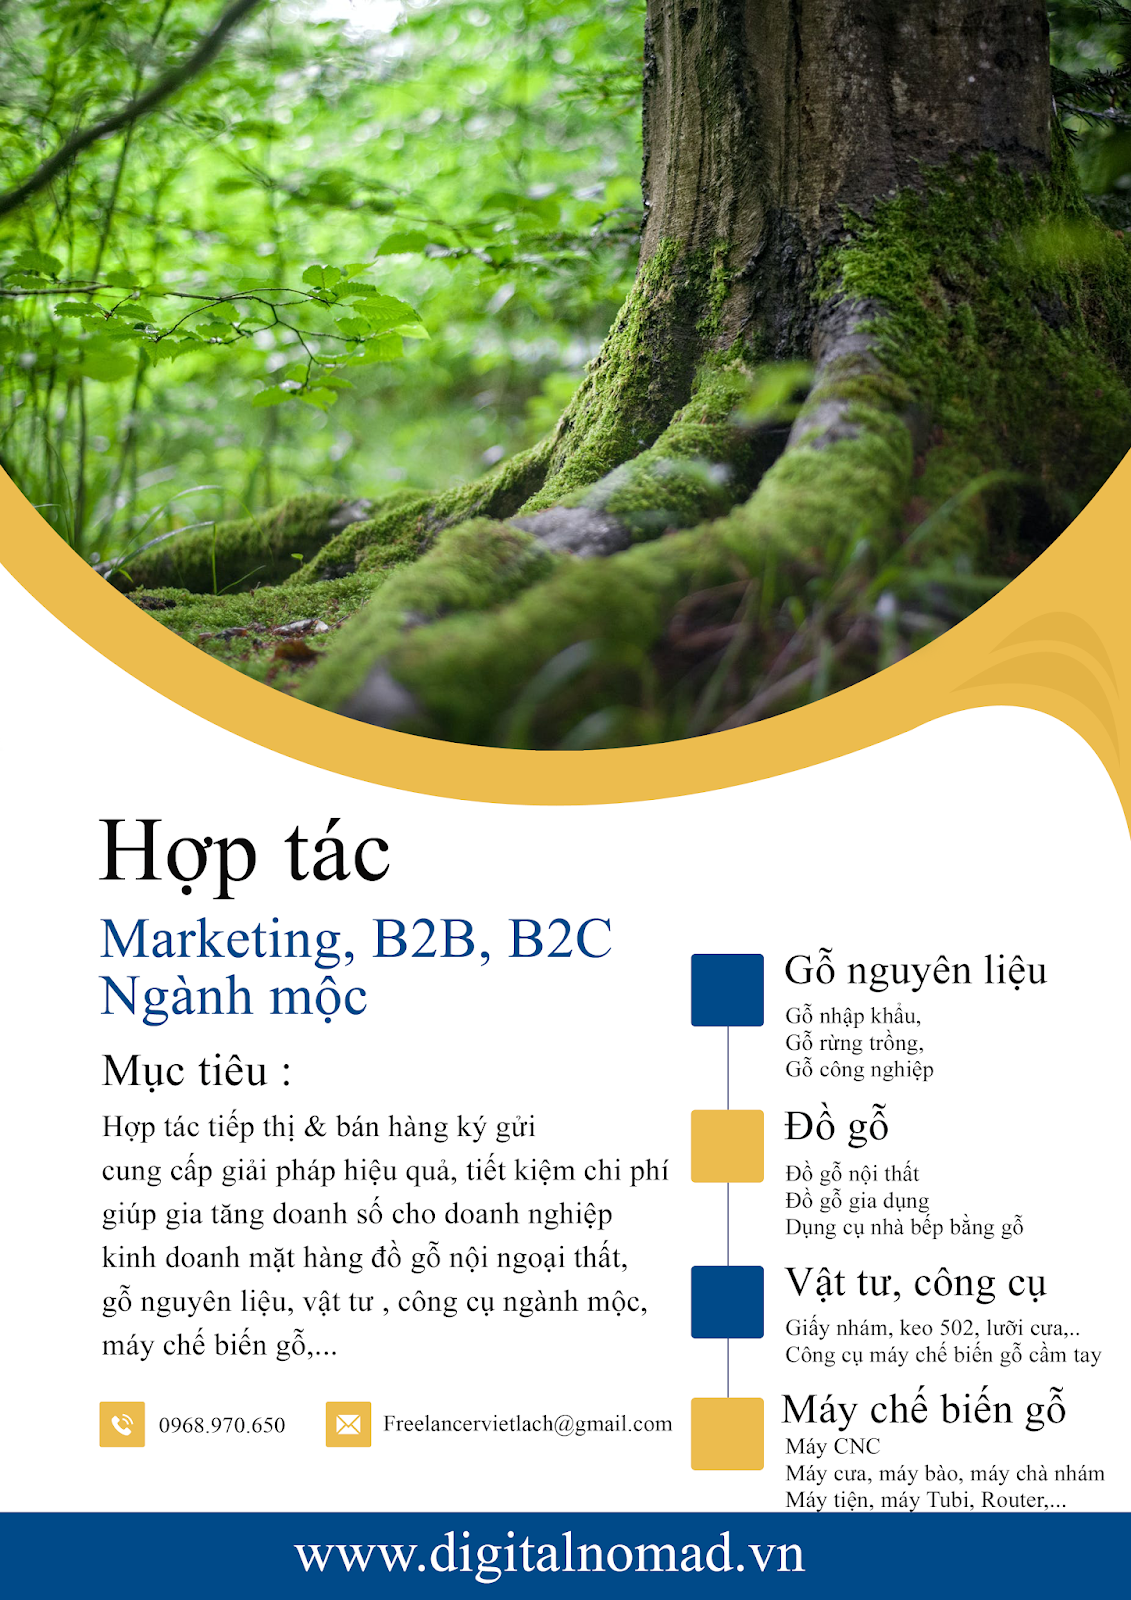 Hợp tác Marketing